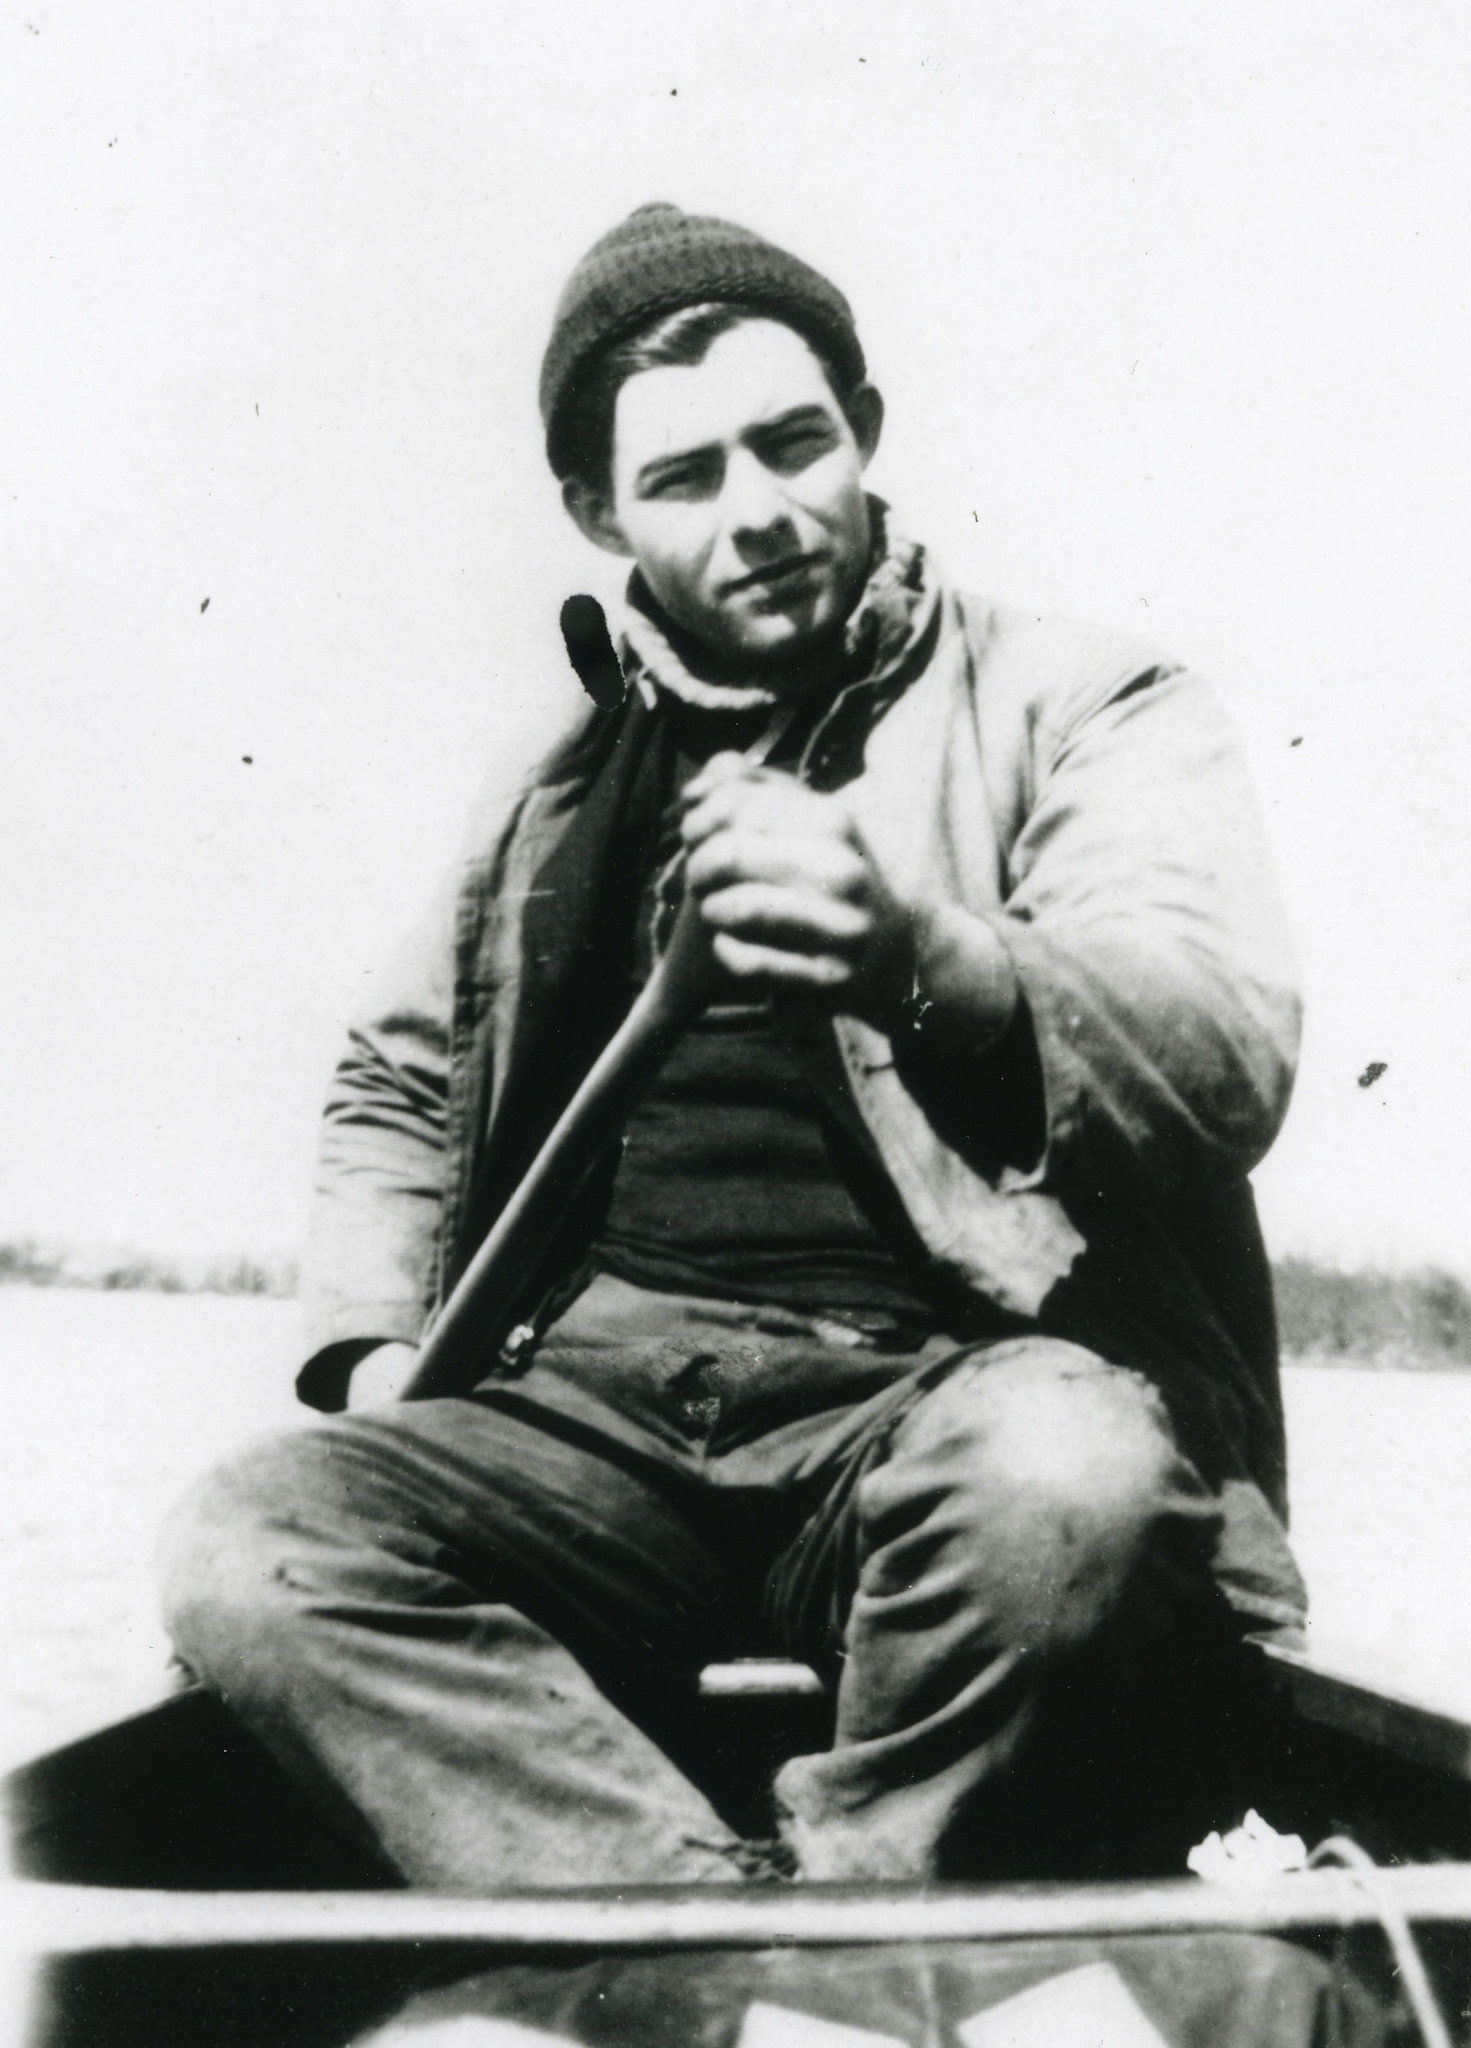 the early life and literary style of ernest hemingway Hemingway is famous for his literary style: simple, understated, and direct he was at his best describing physical activity his short story a clean and well-lighted place was written in his early time, which has a typical hemingway's style.